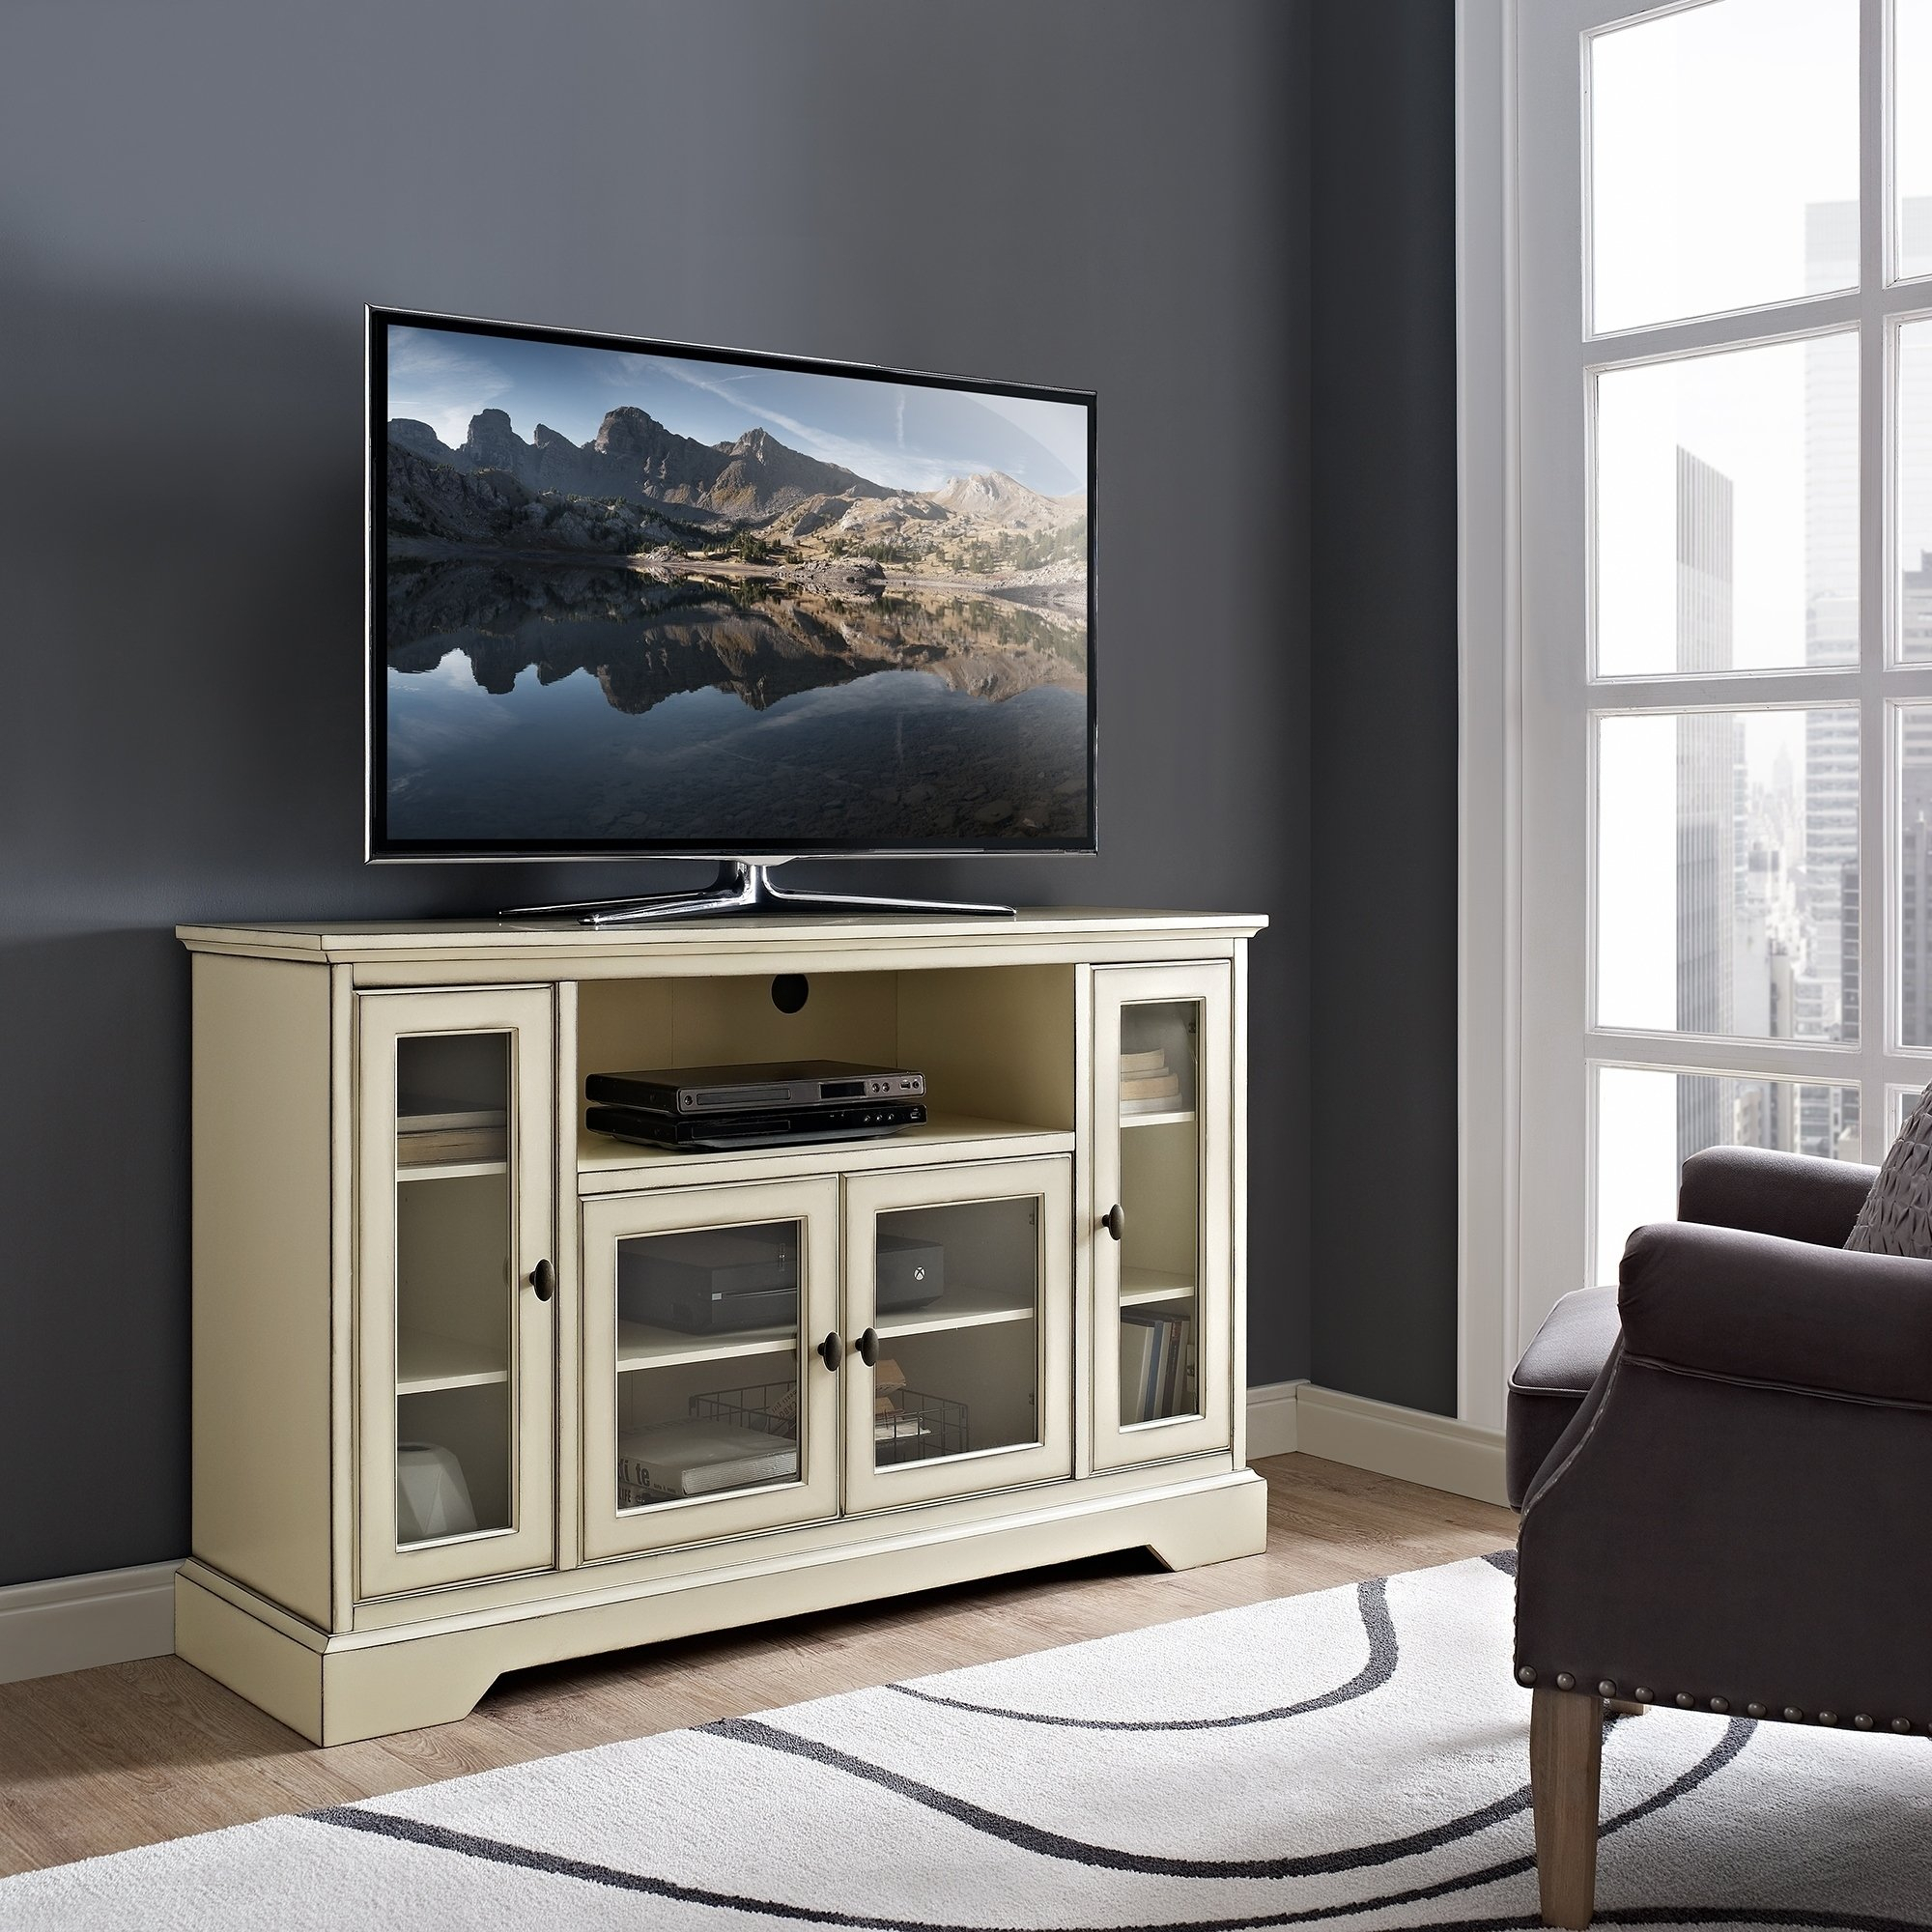 Buy Grey, 42 – 60 Inches Tv Stands & Entertainment Centers Online At Intended For Rowan 45 Inch Tv Stands (View 23 of 30)